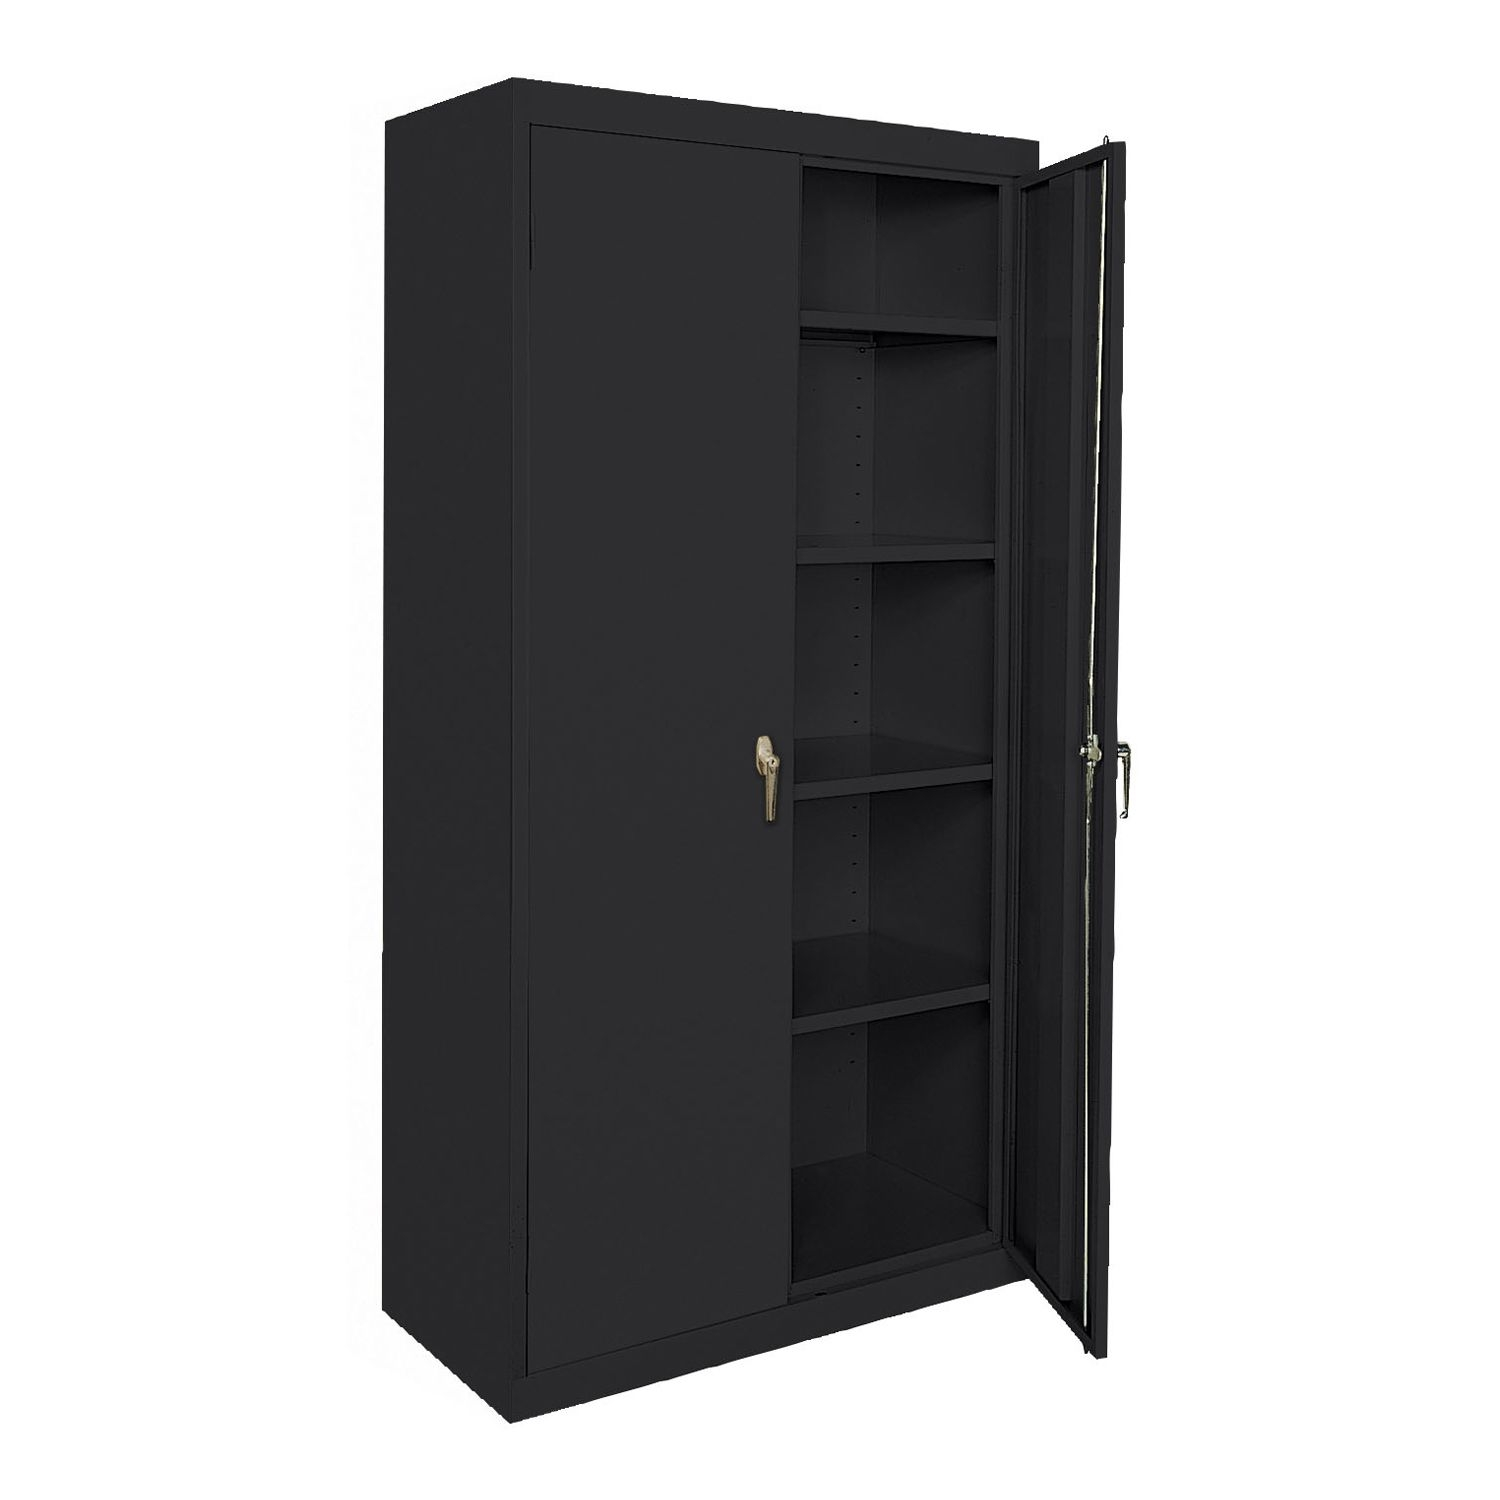 Storage Cabinets With Doors And Shelves And Locks